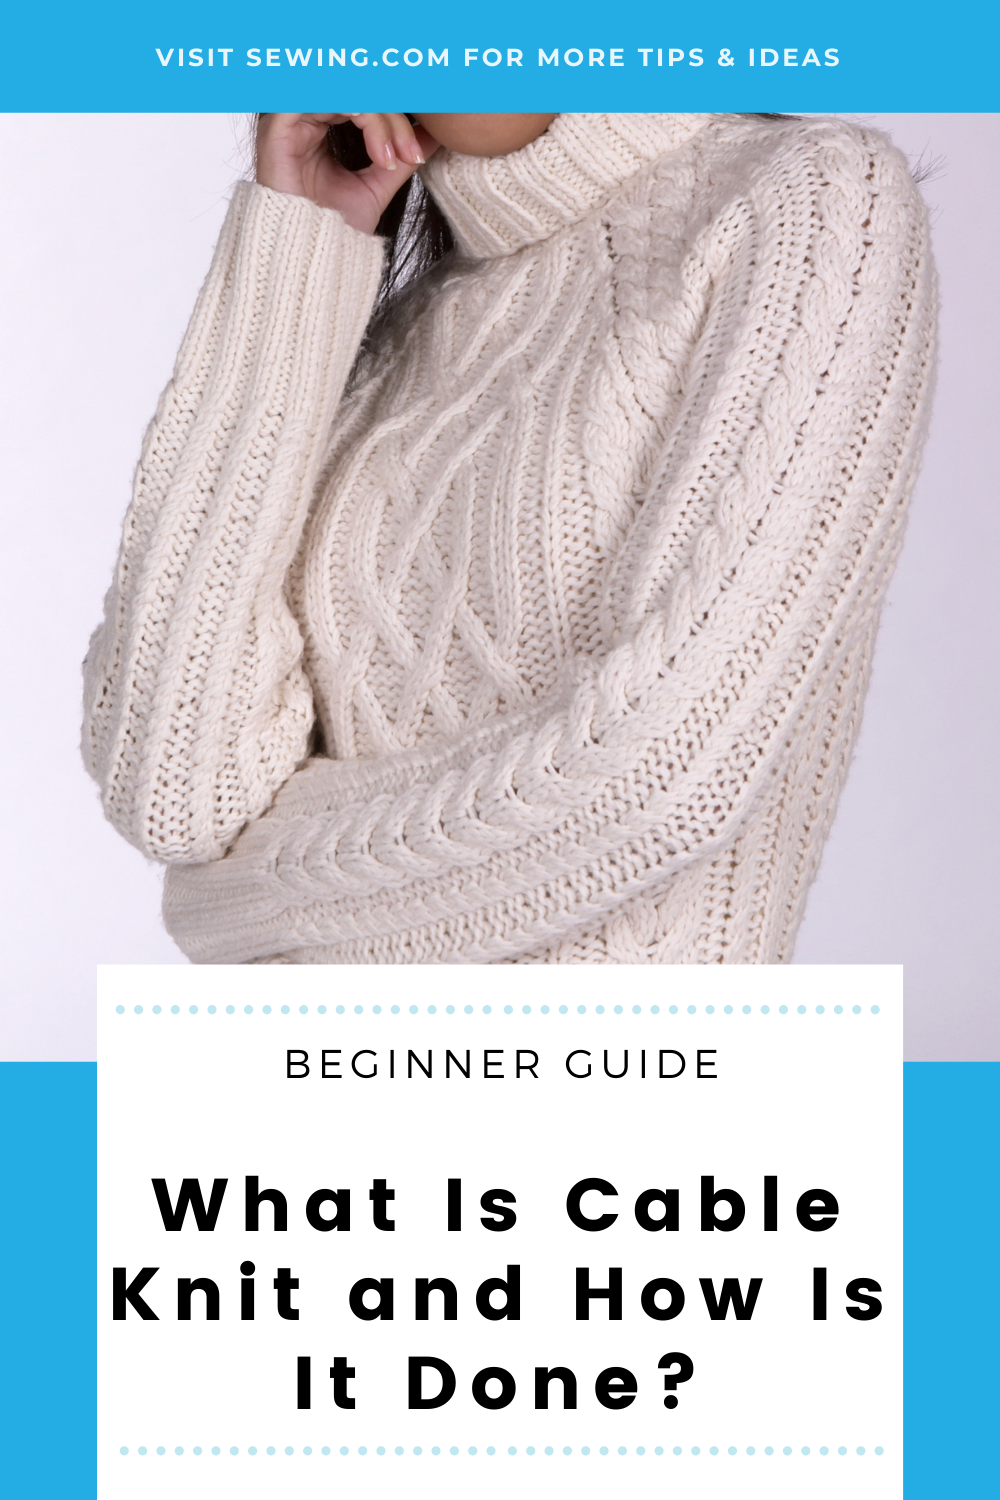 placard | What Is Cable Knit and How Is It Done?